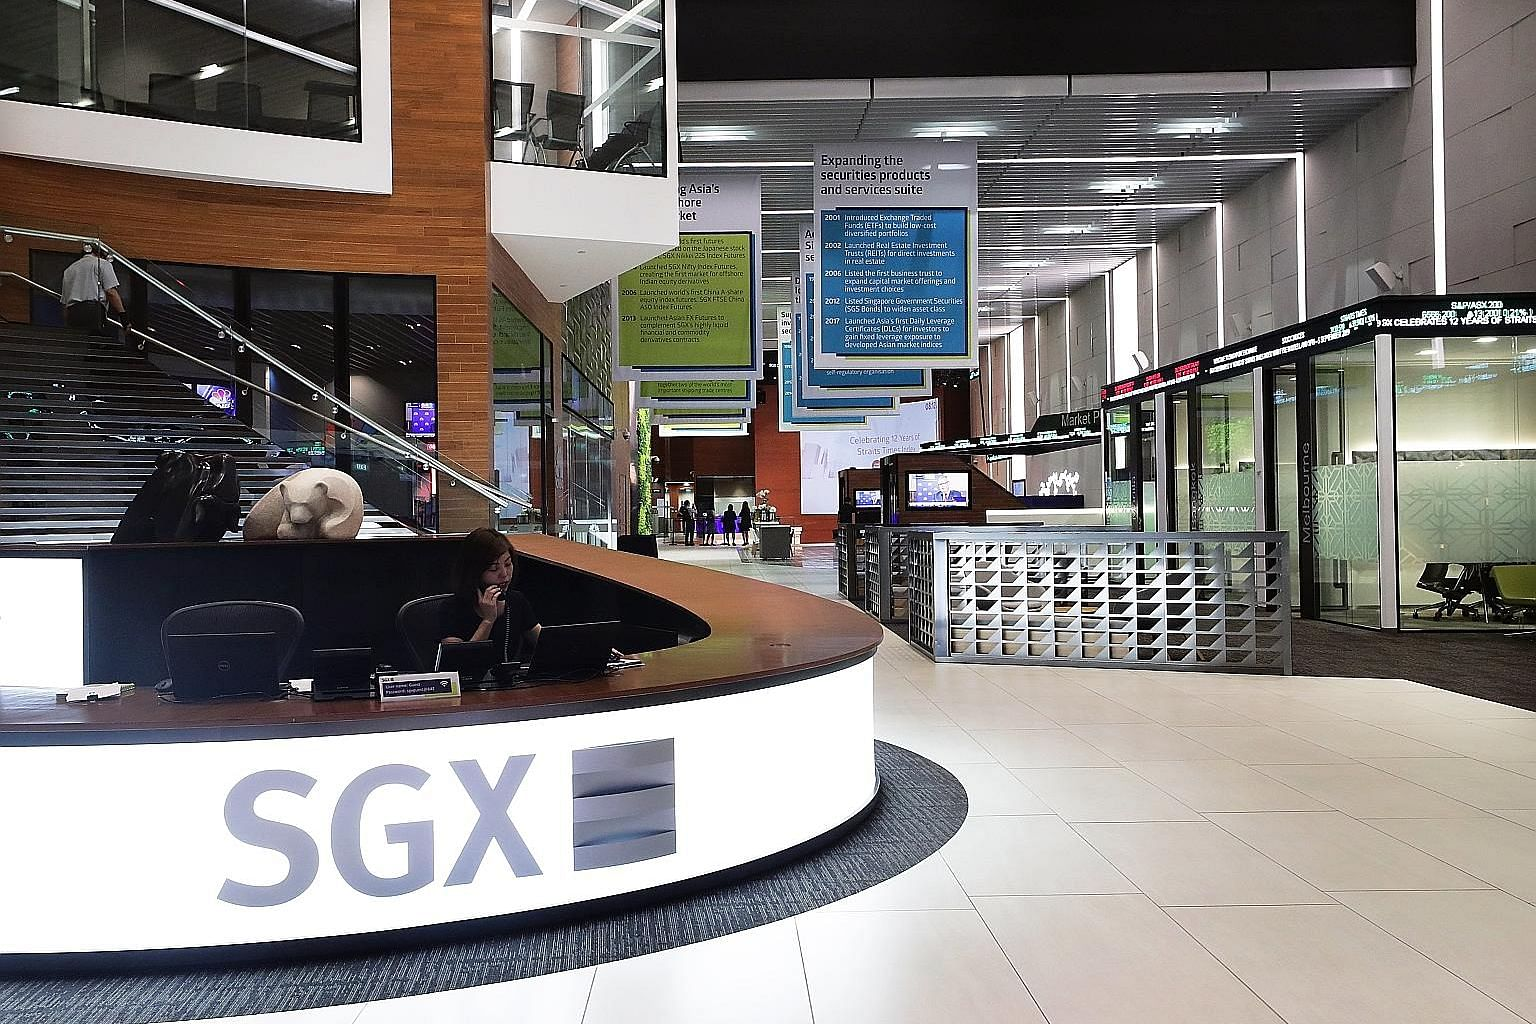 While the coronavirus pandemic has had an impact on listings globally, the Singapore Exchange (SGX) has seen an increase in interest in recent weeks, as various markets and economies reopen. SGX global head of equity capital markets Mohamed Nasser Is